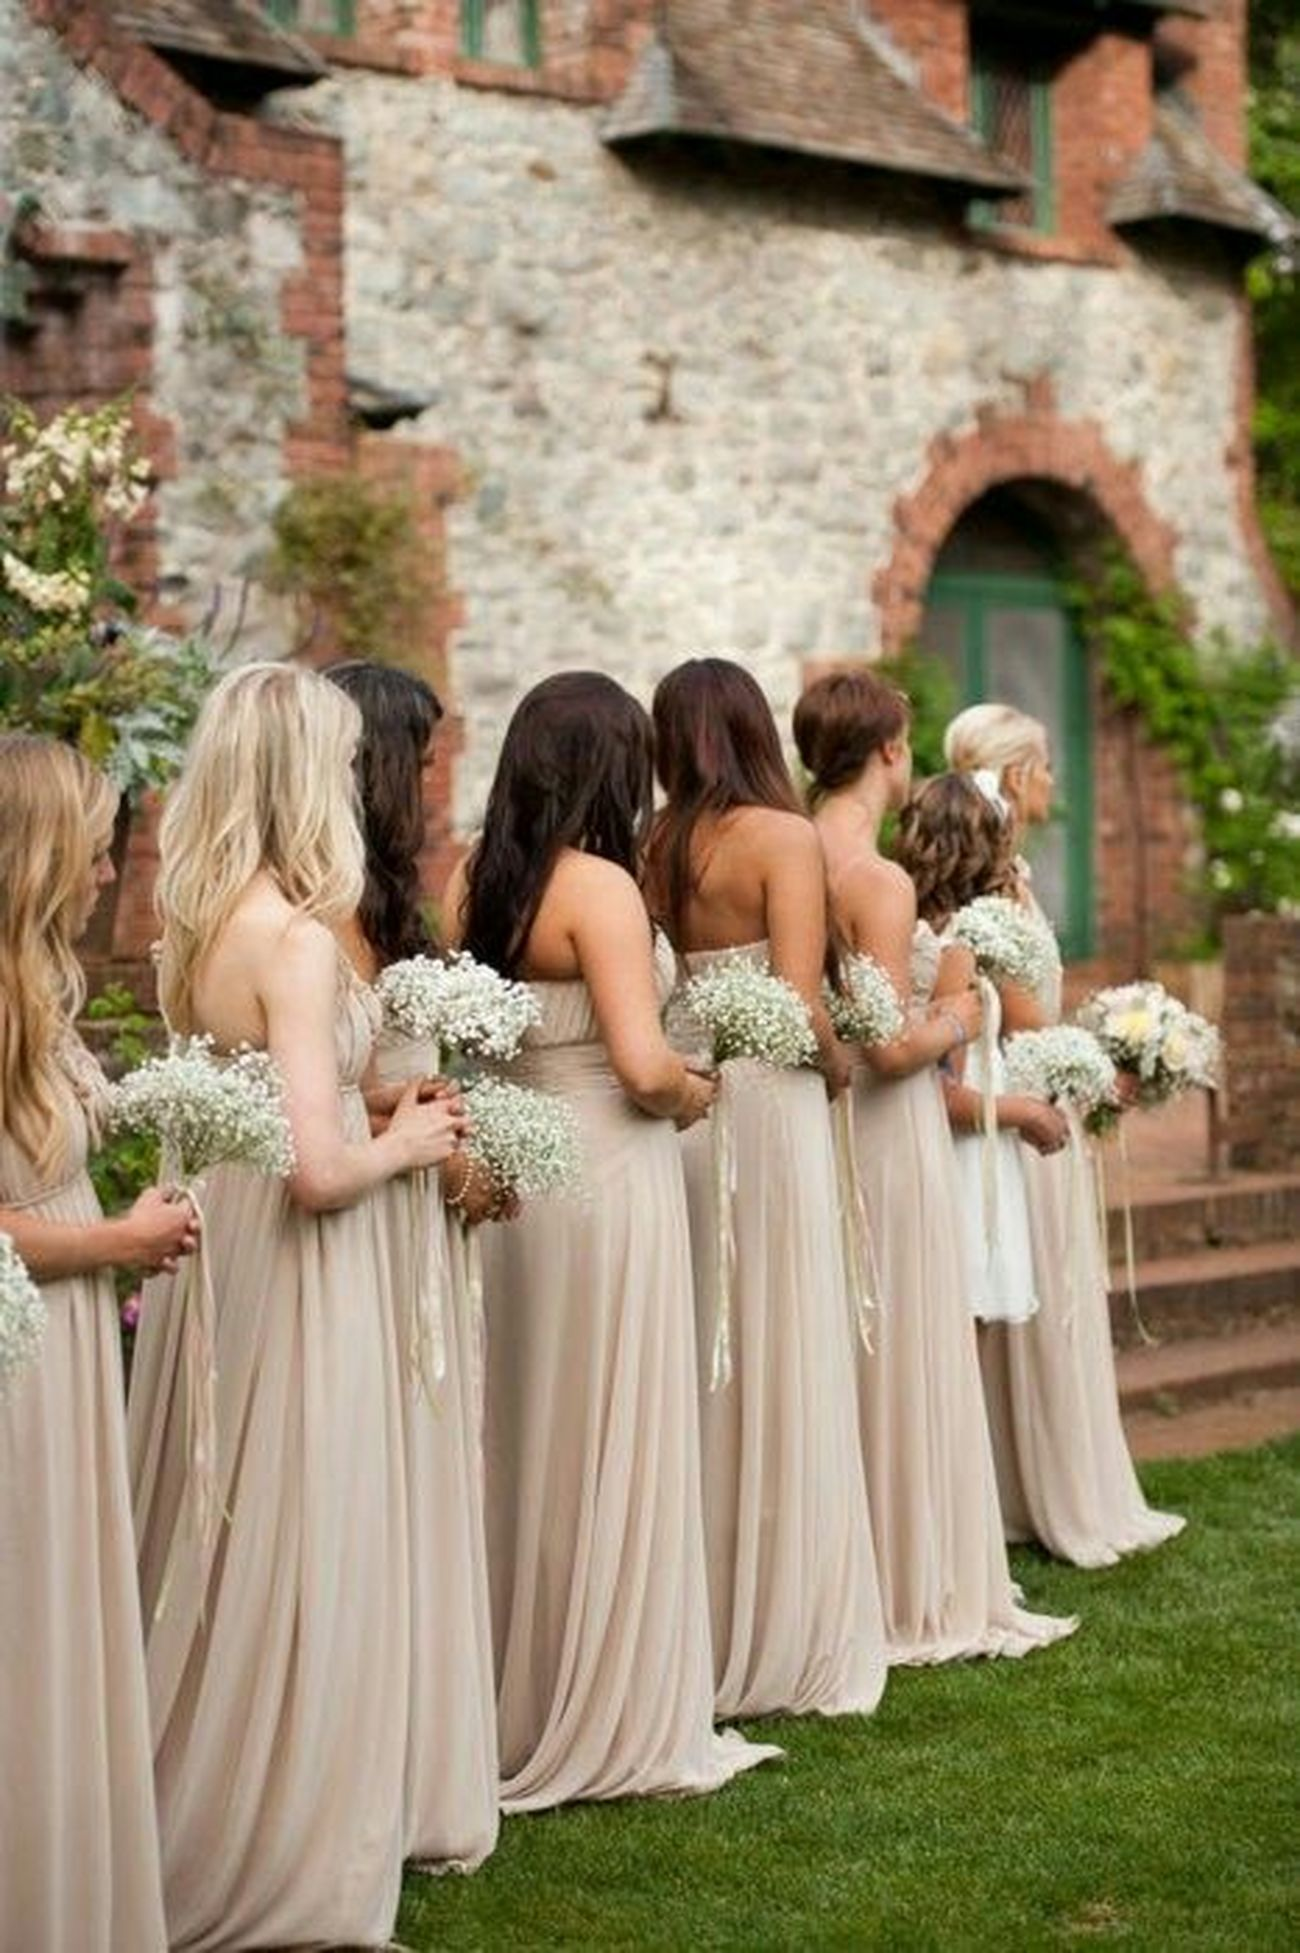 Togetherness Couple - Relationship Bonding Love Bride Side View Leisure Activity Focus On Foreground Married Groom Outdoors Photography Amazing Inspired Amazing_captures Fashion Wedding Faces Of EyeEm Beautiful People Model Portrait Flowers Long Hair Girls Day